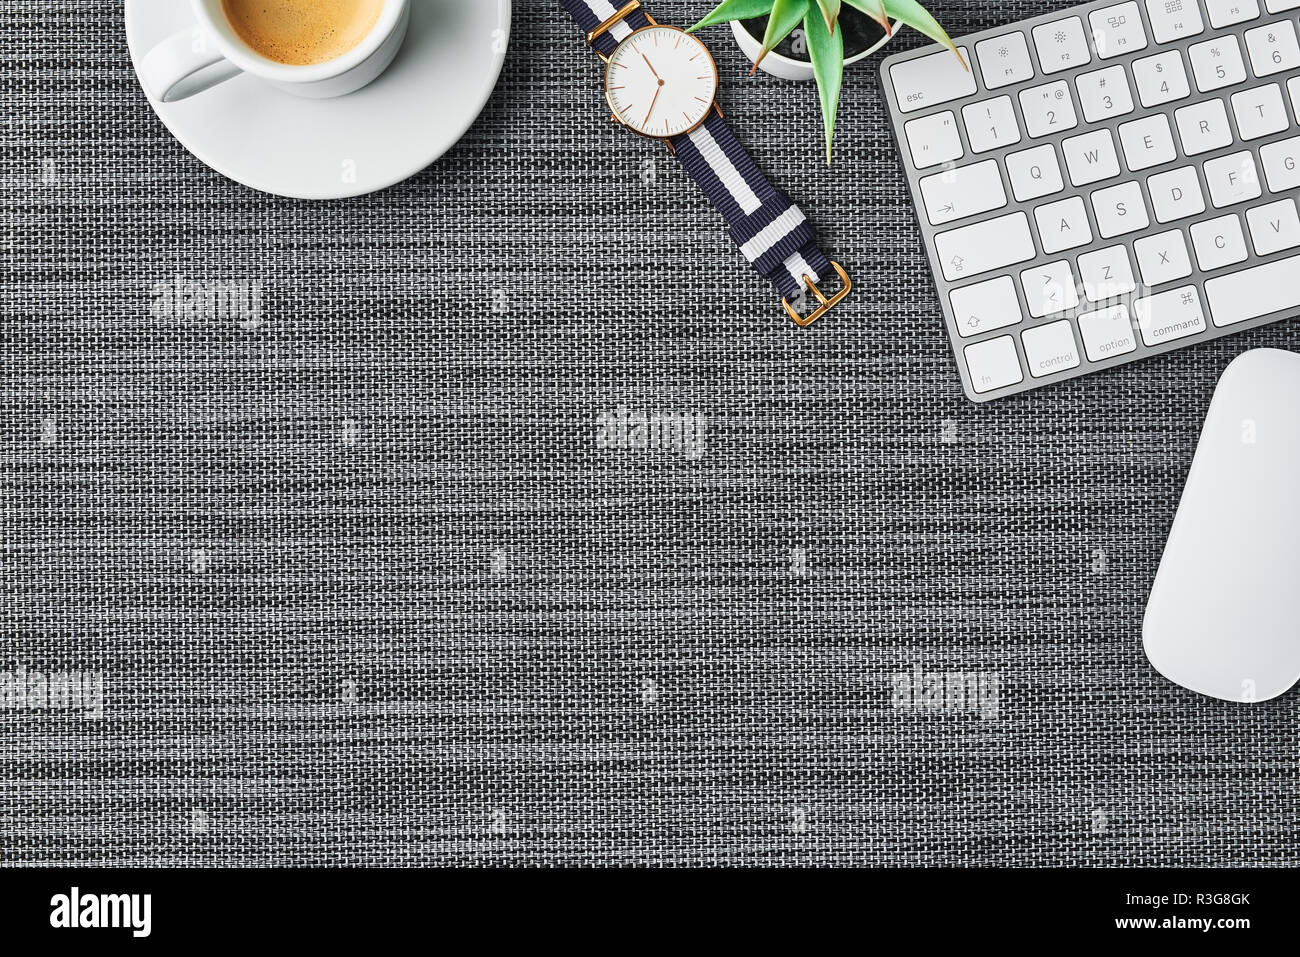 Cozy business composition with white computer keyboard, mouse, coffee cup, women's watch and artificial plant on grey background. Coffee break at the  - Stock Image